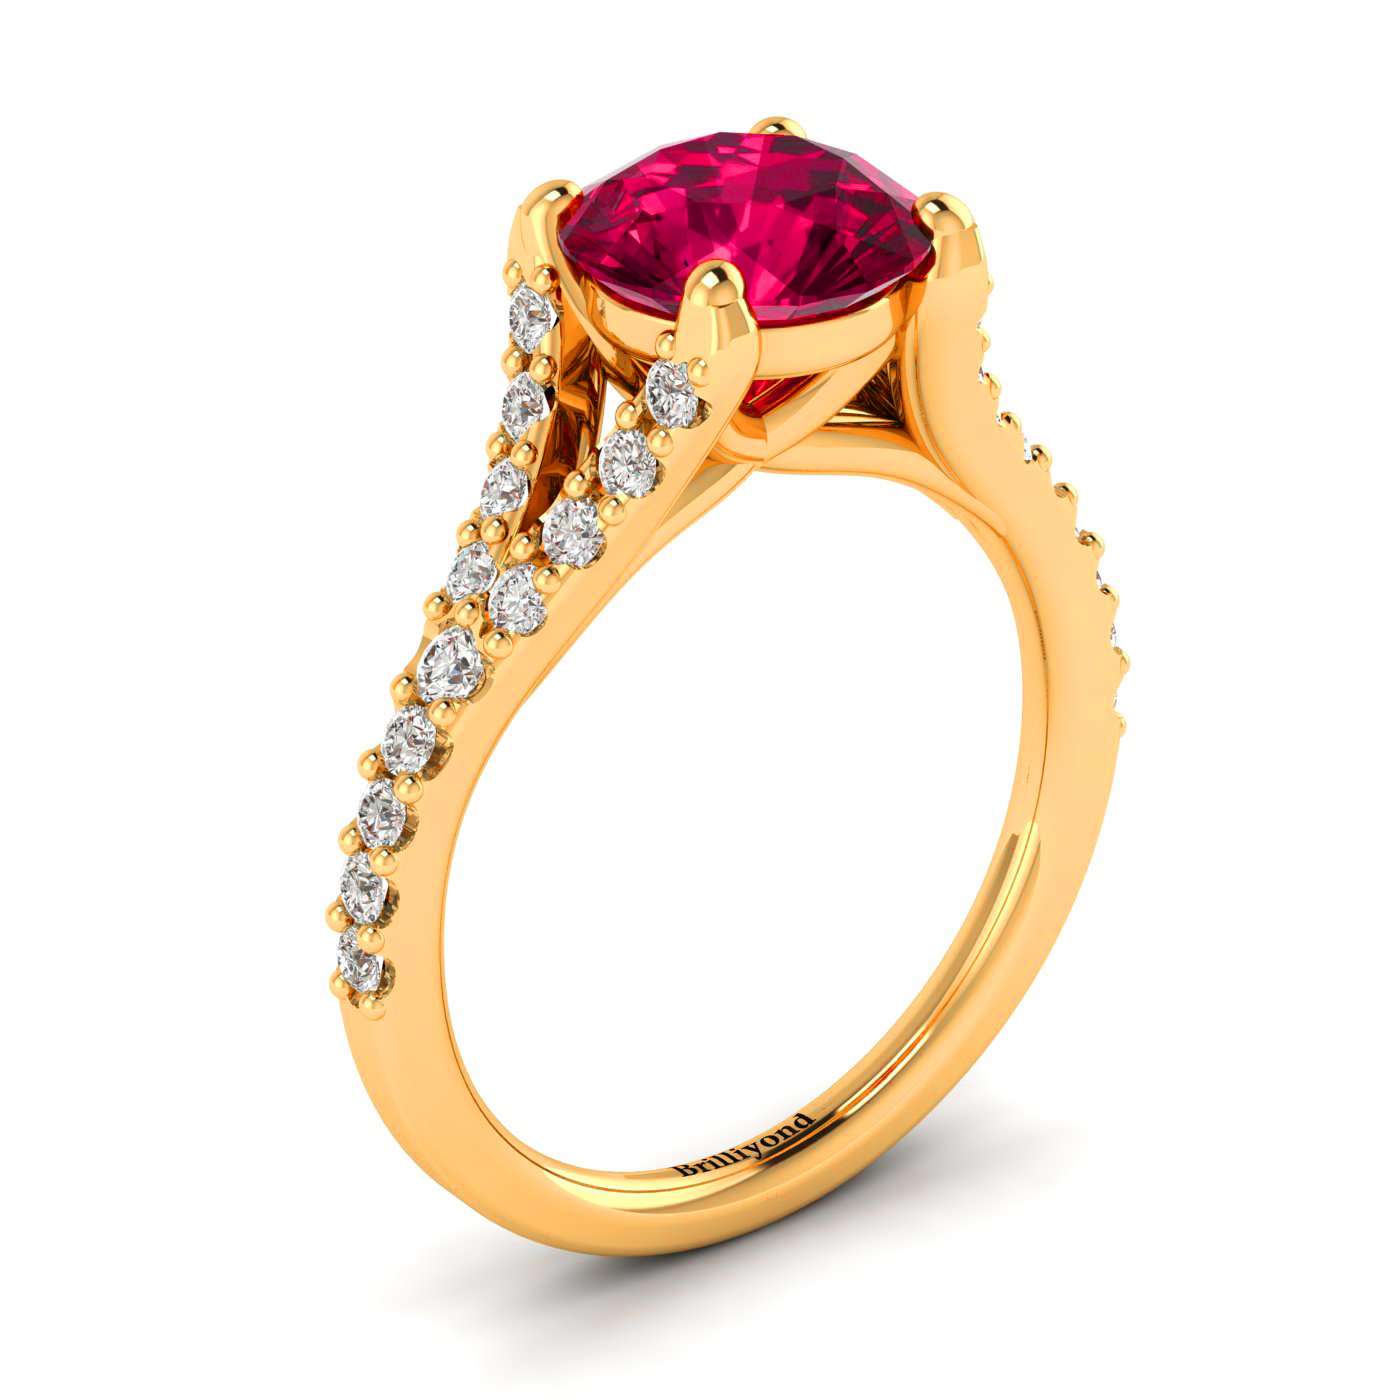 6.5mm Ruby with 26 Accent Diamonds on 18k Yellow Gold Band